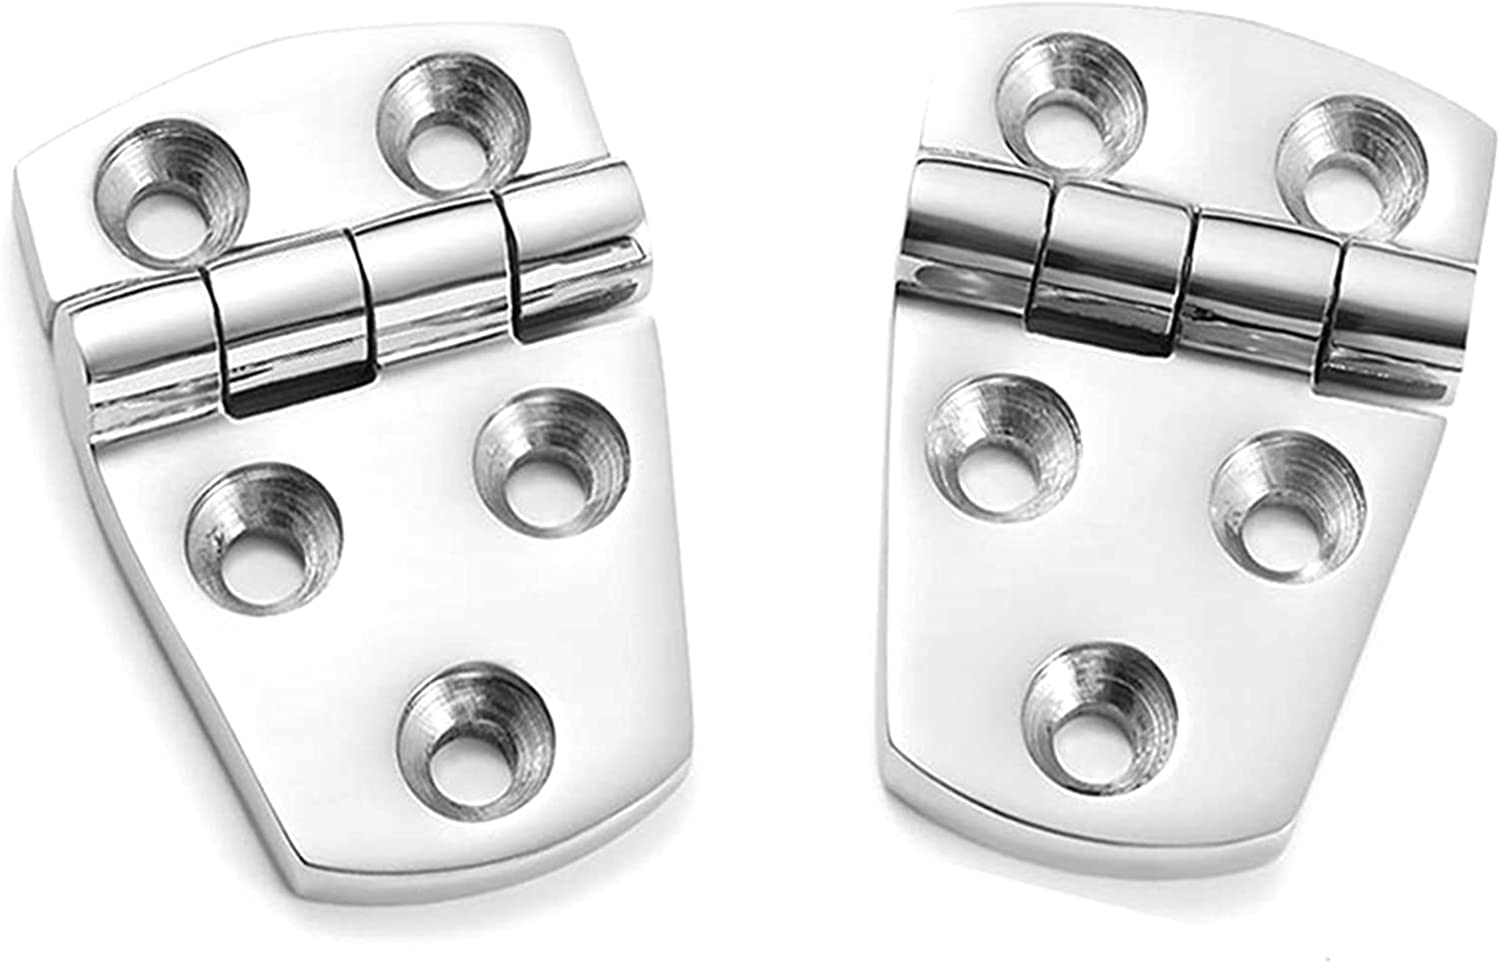 ZHANGM Marine Save money Hinges Grade Boat Table New products, world's highest quality popular! Short H Side